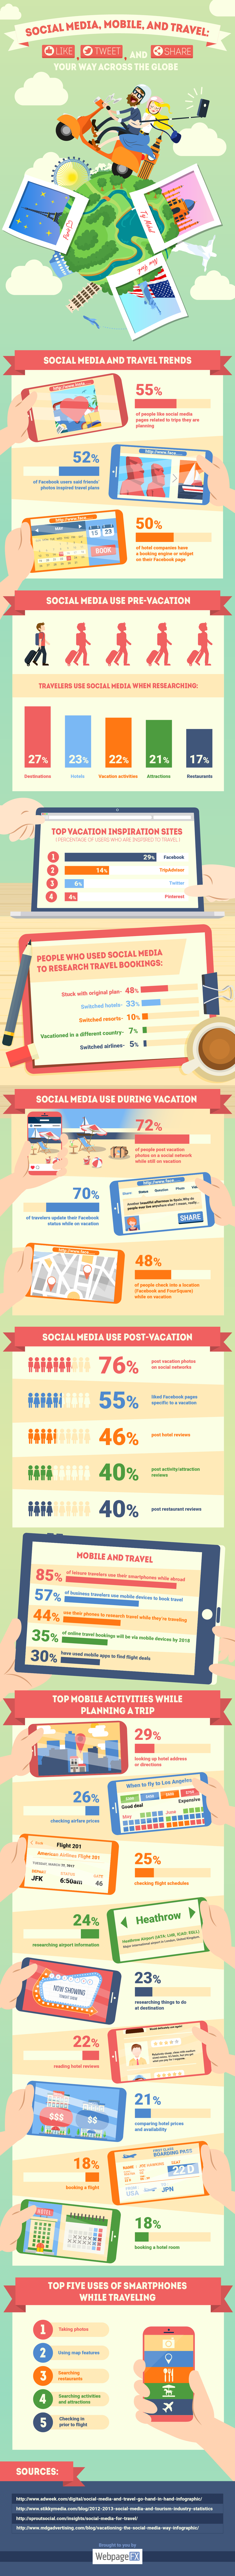 Social Media and Travel: How People Like, Tweet and Share Their Way Across the Globe [Infographic] | Social Media Today